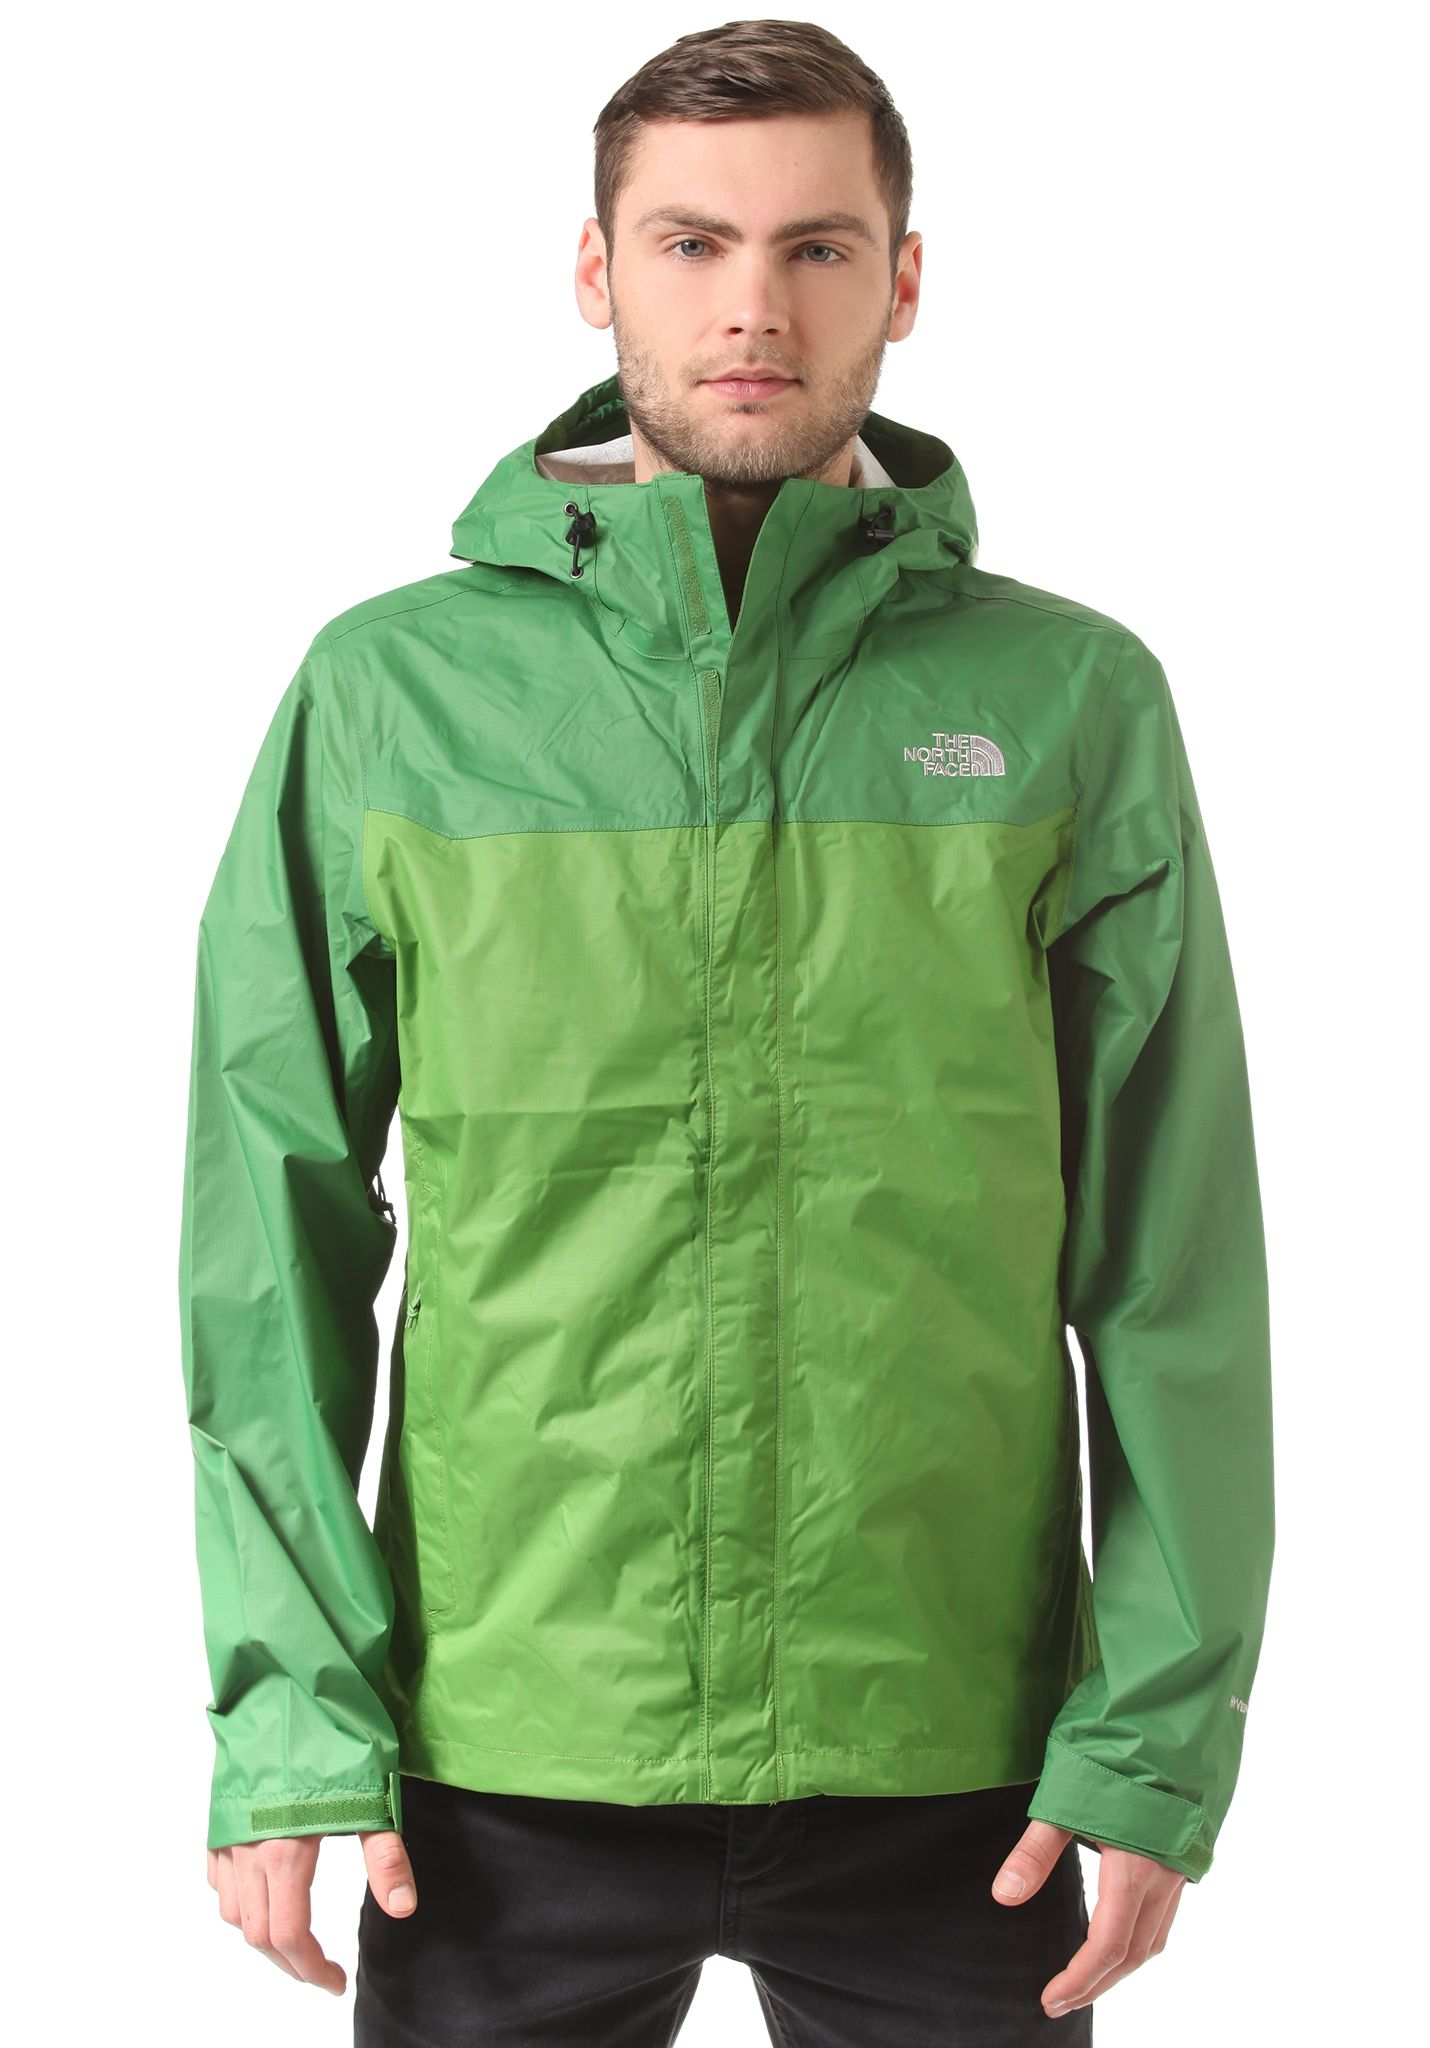 THE NORTH FACE Venture - Functional Jacket for Men - Green - Planet Sports b13e7db2467